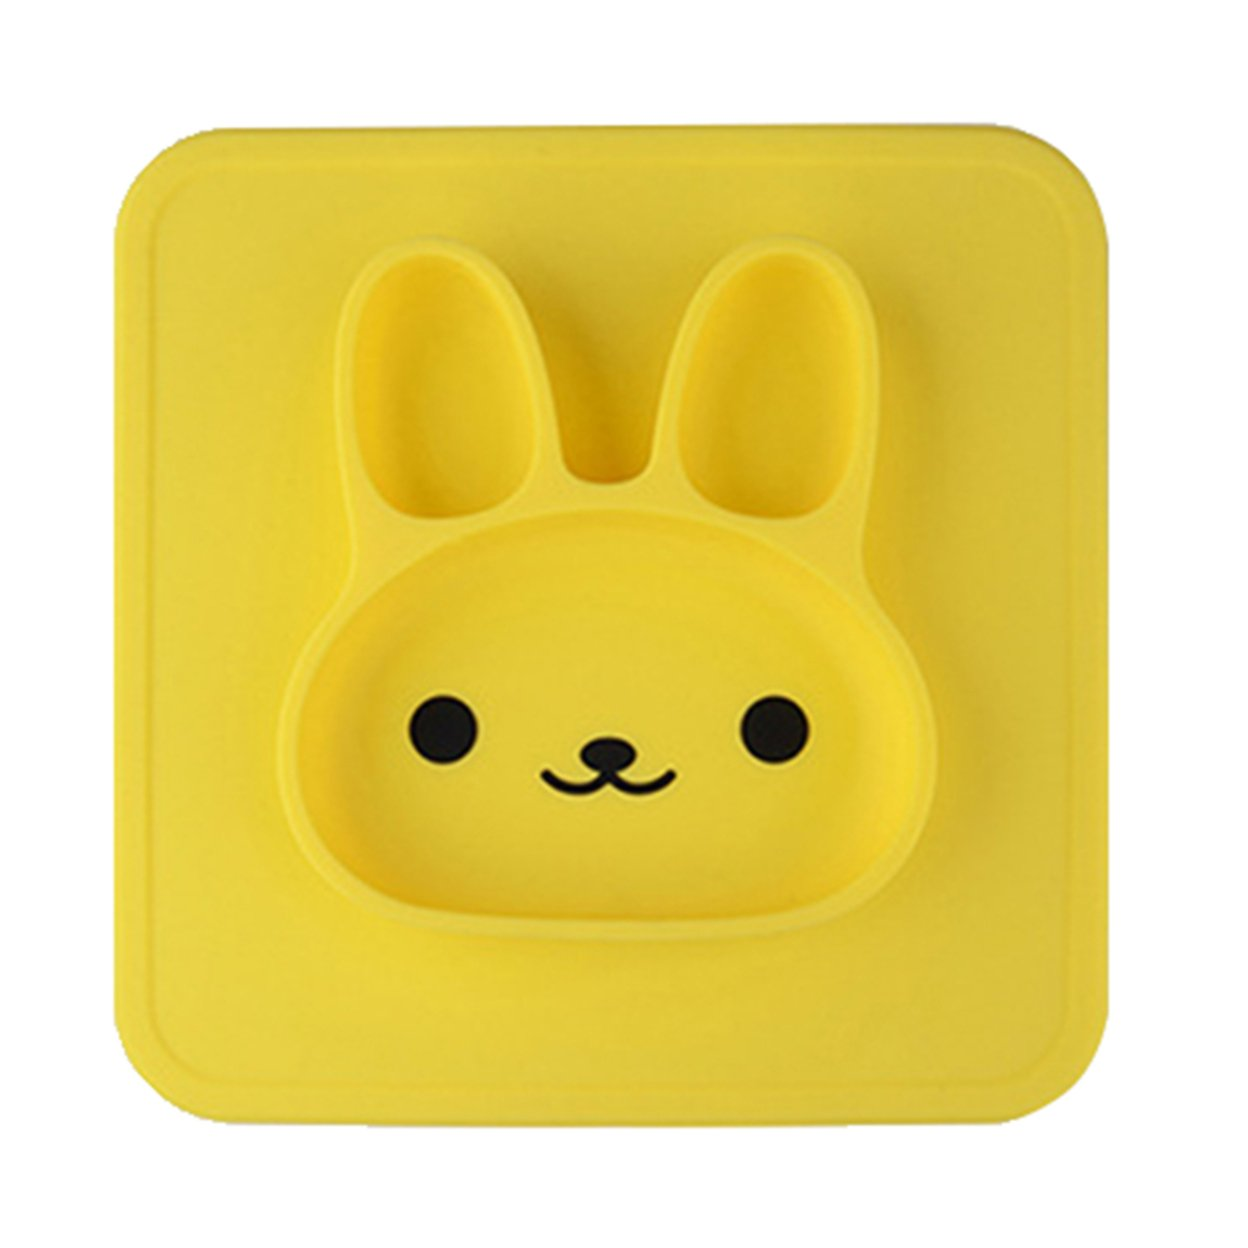 Rabbit Cartoon Food Grade Silicone Plate Fruits Dishes Children Kids Gifts Bowl 59c4be3be2246139876c6b90